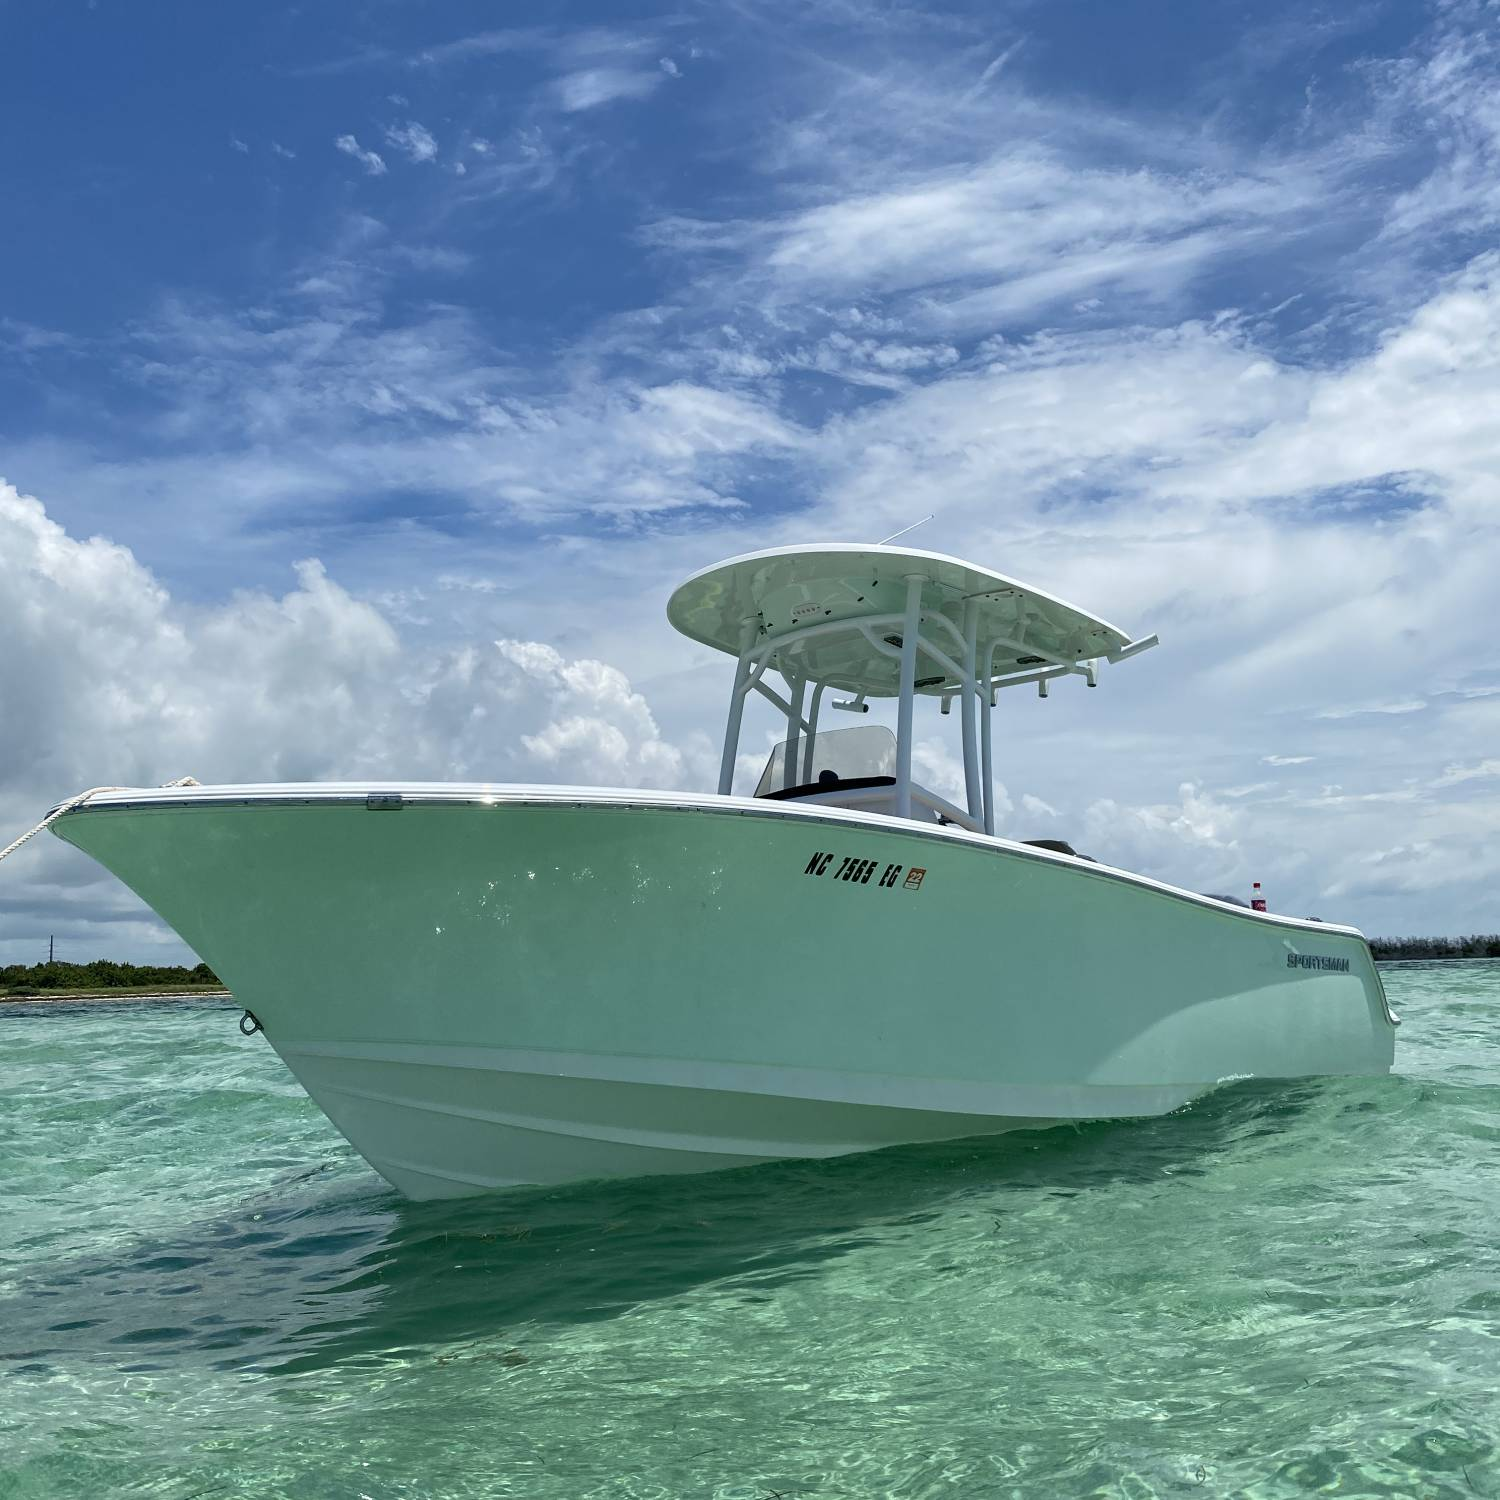 Beautiful day on the water in the Florida Keys!